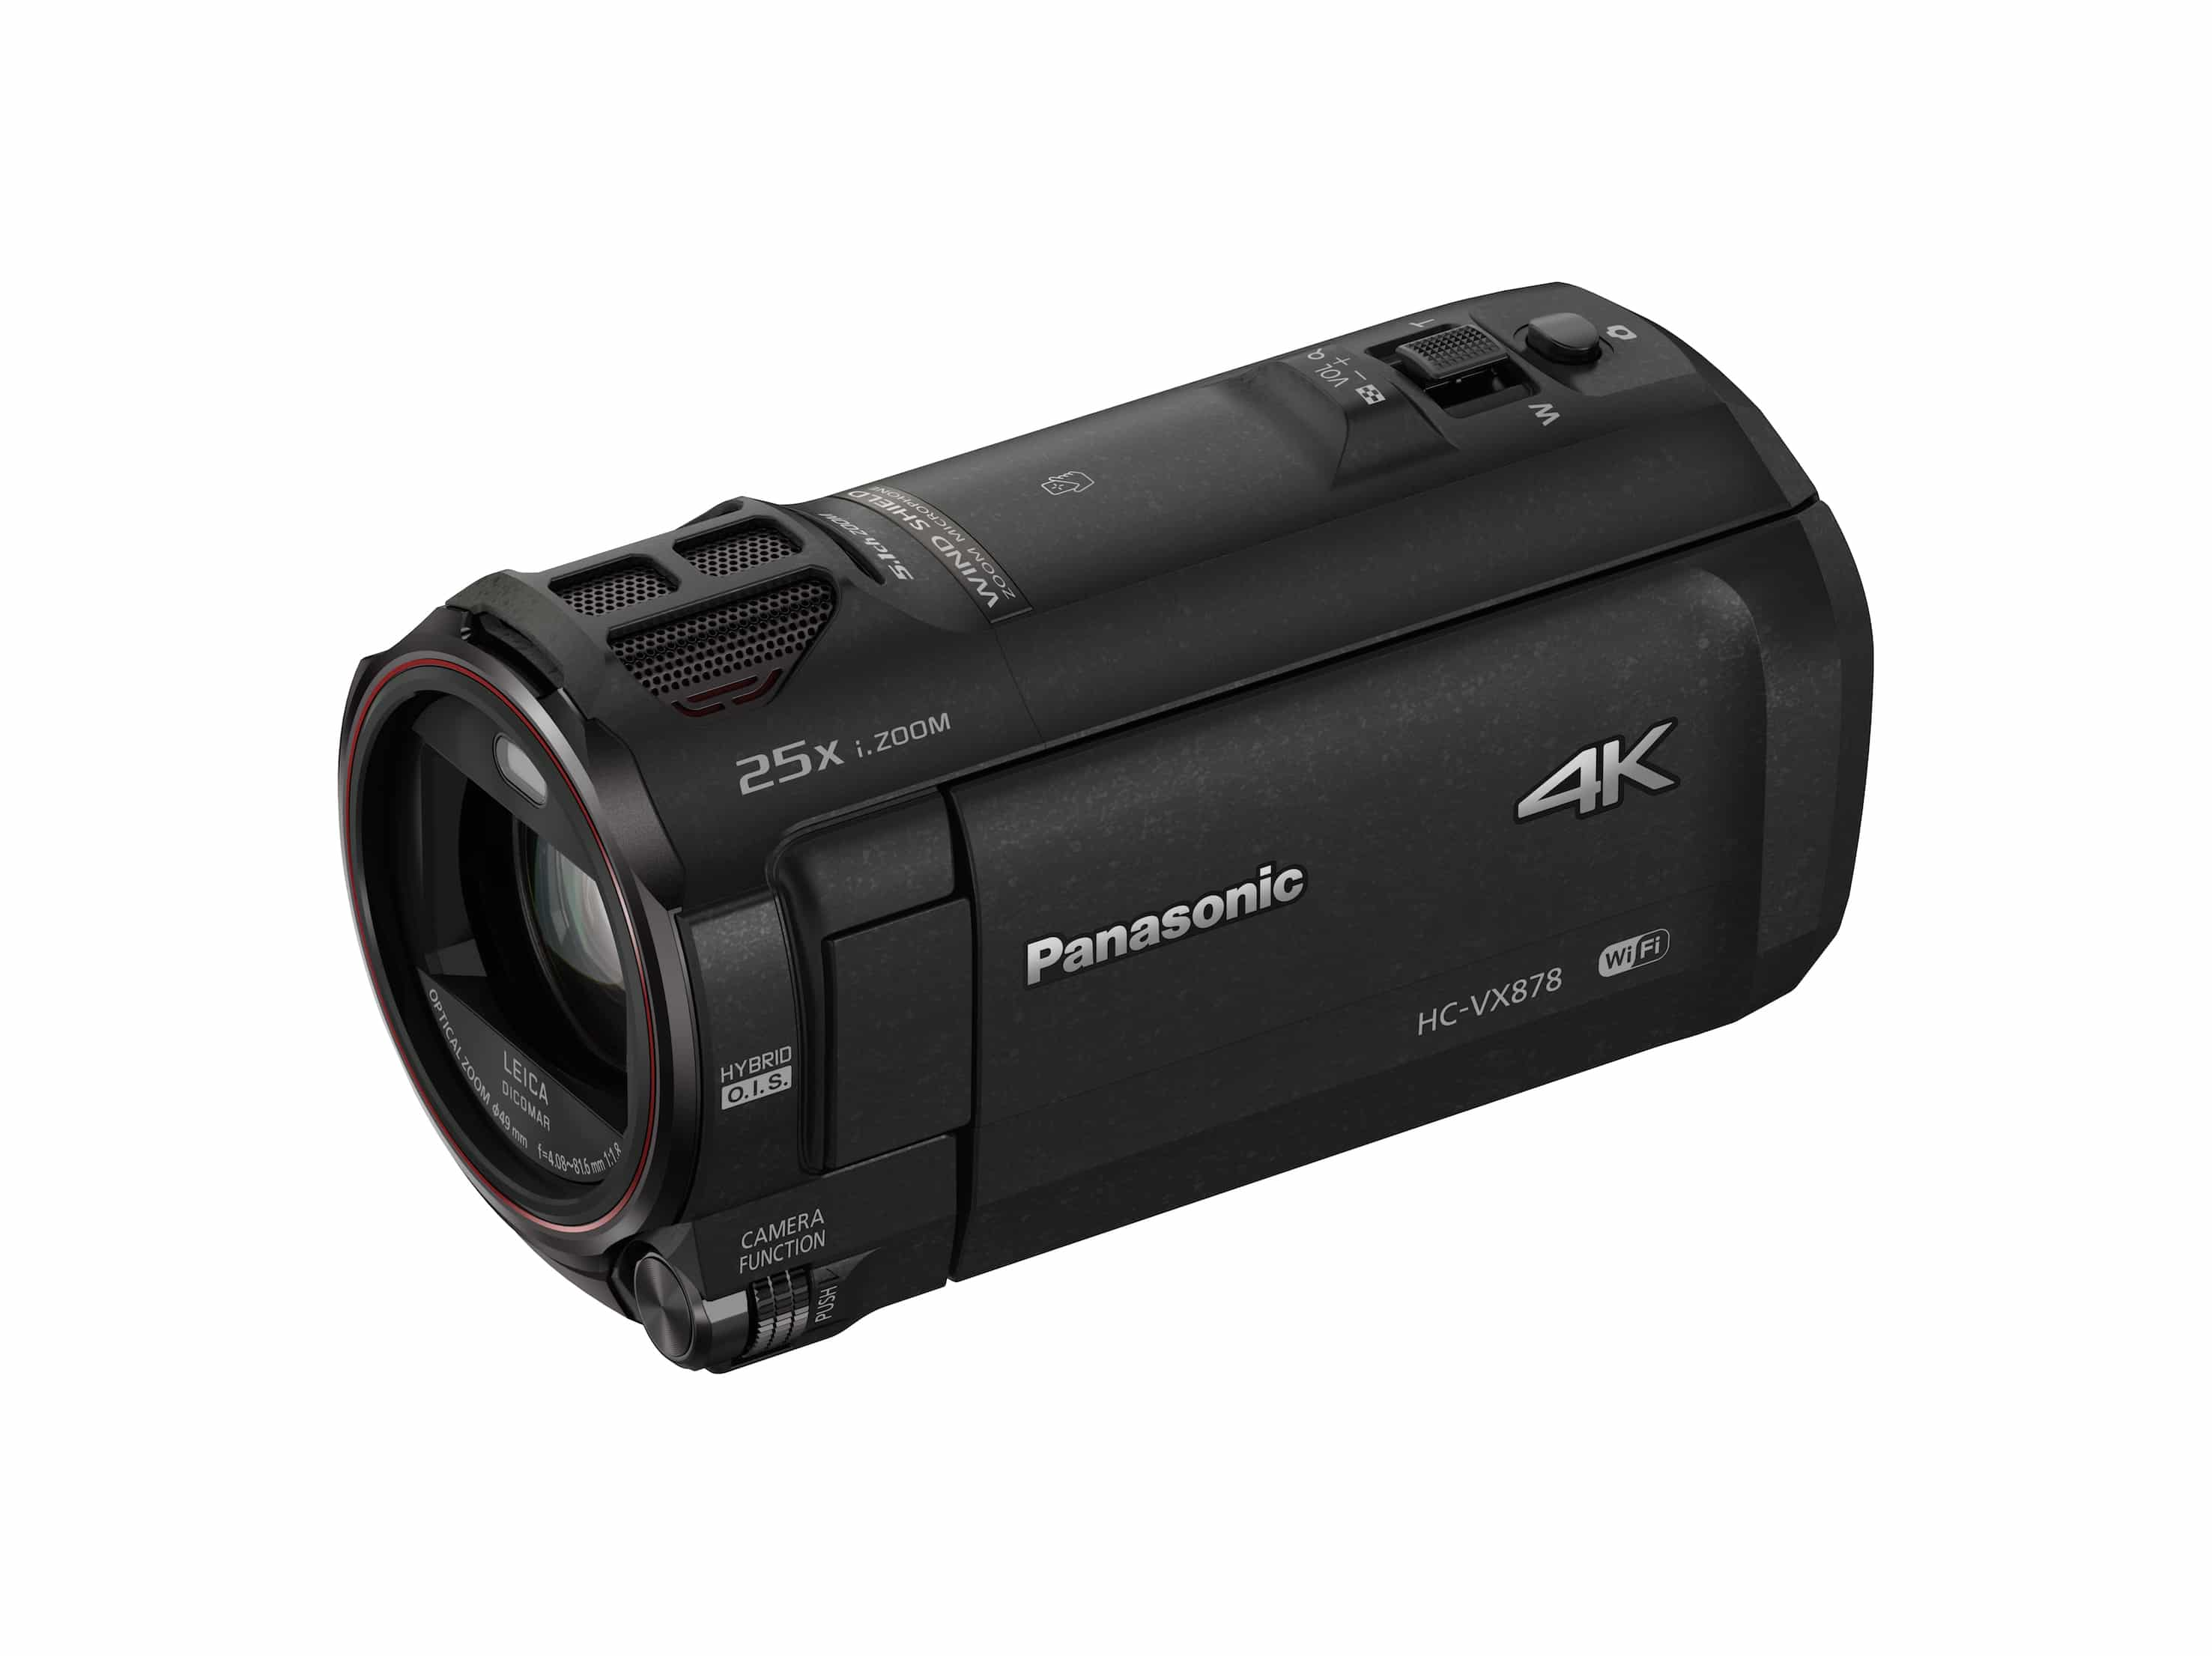 HC-WX979 4K Camcorder von Panasonic mit Twin-Camera